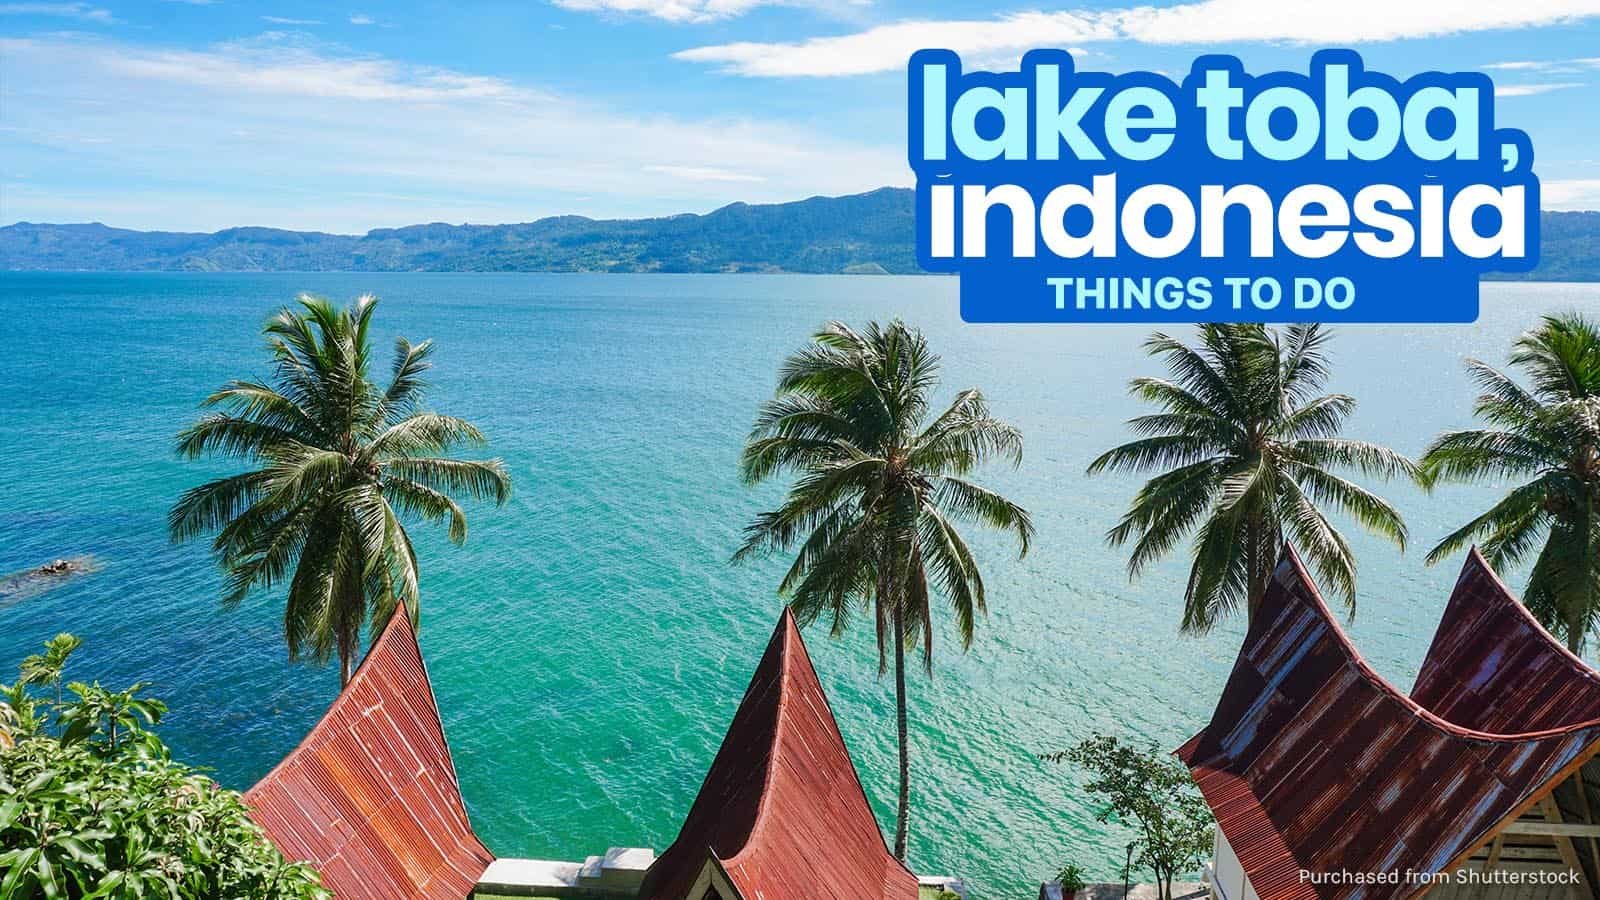 12 BEST THINGS TO DO in LAKE TOBA, INDONESIA